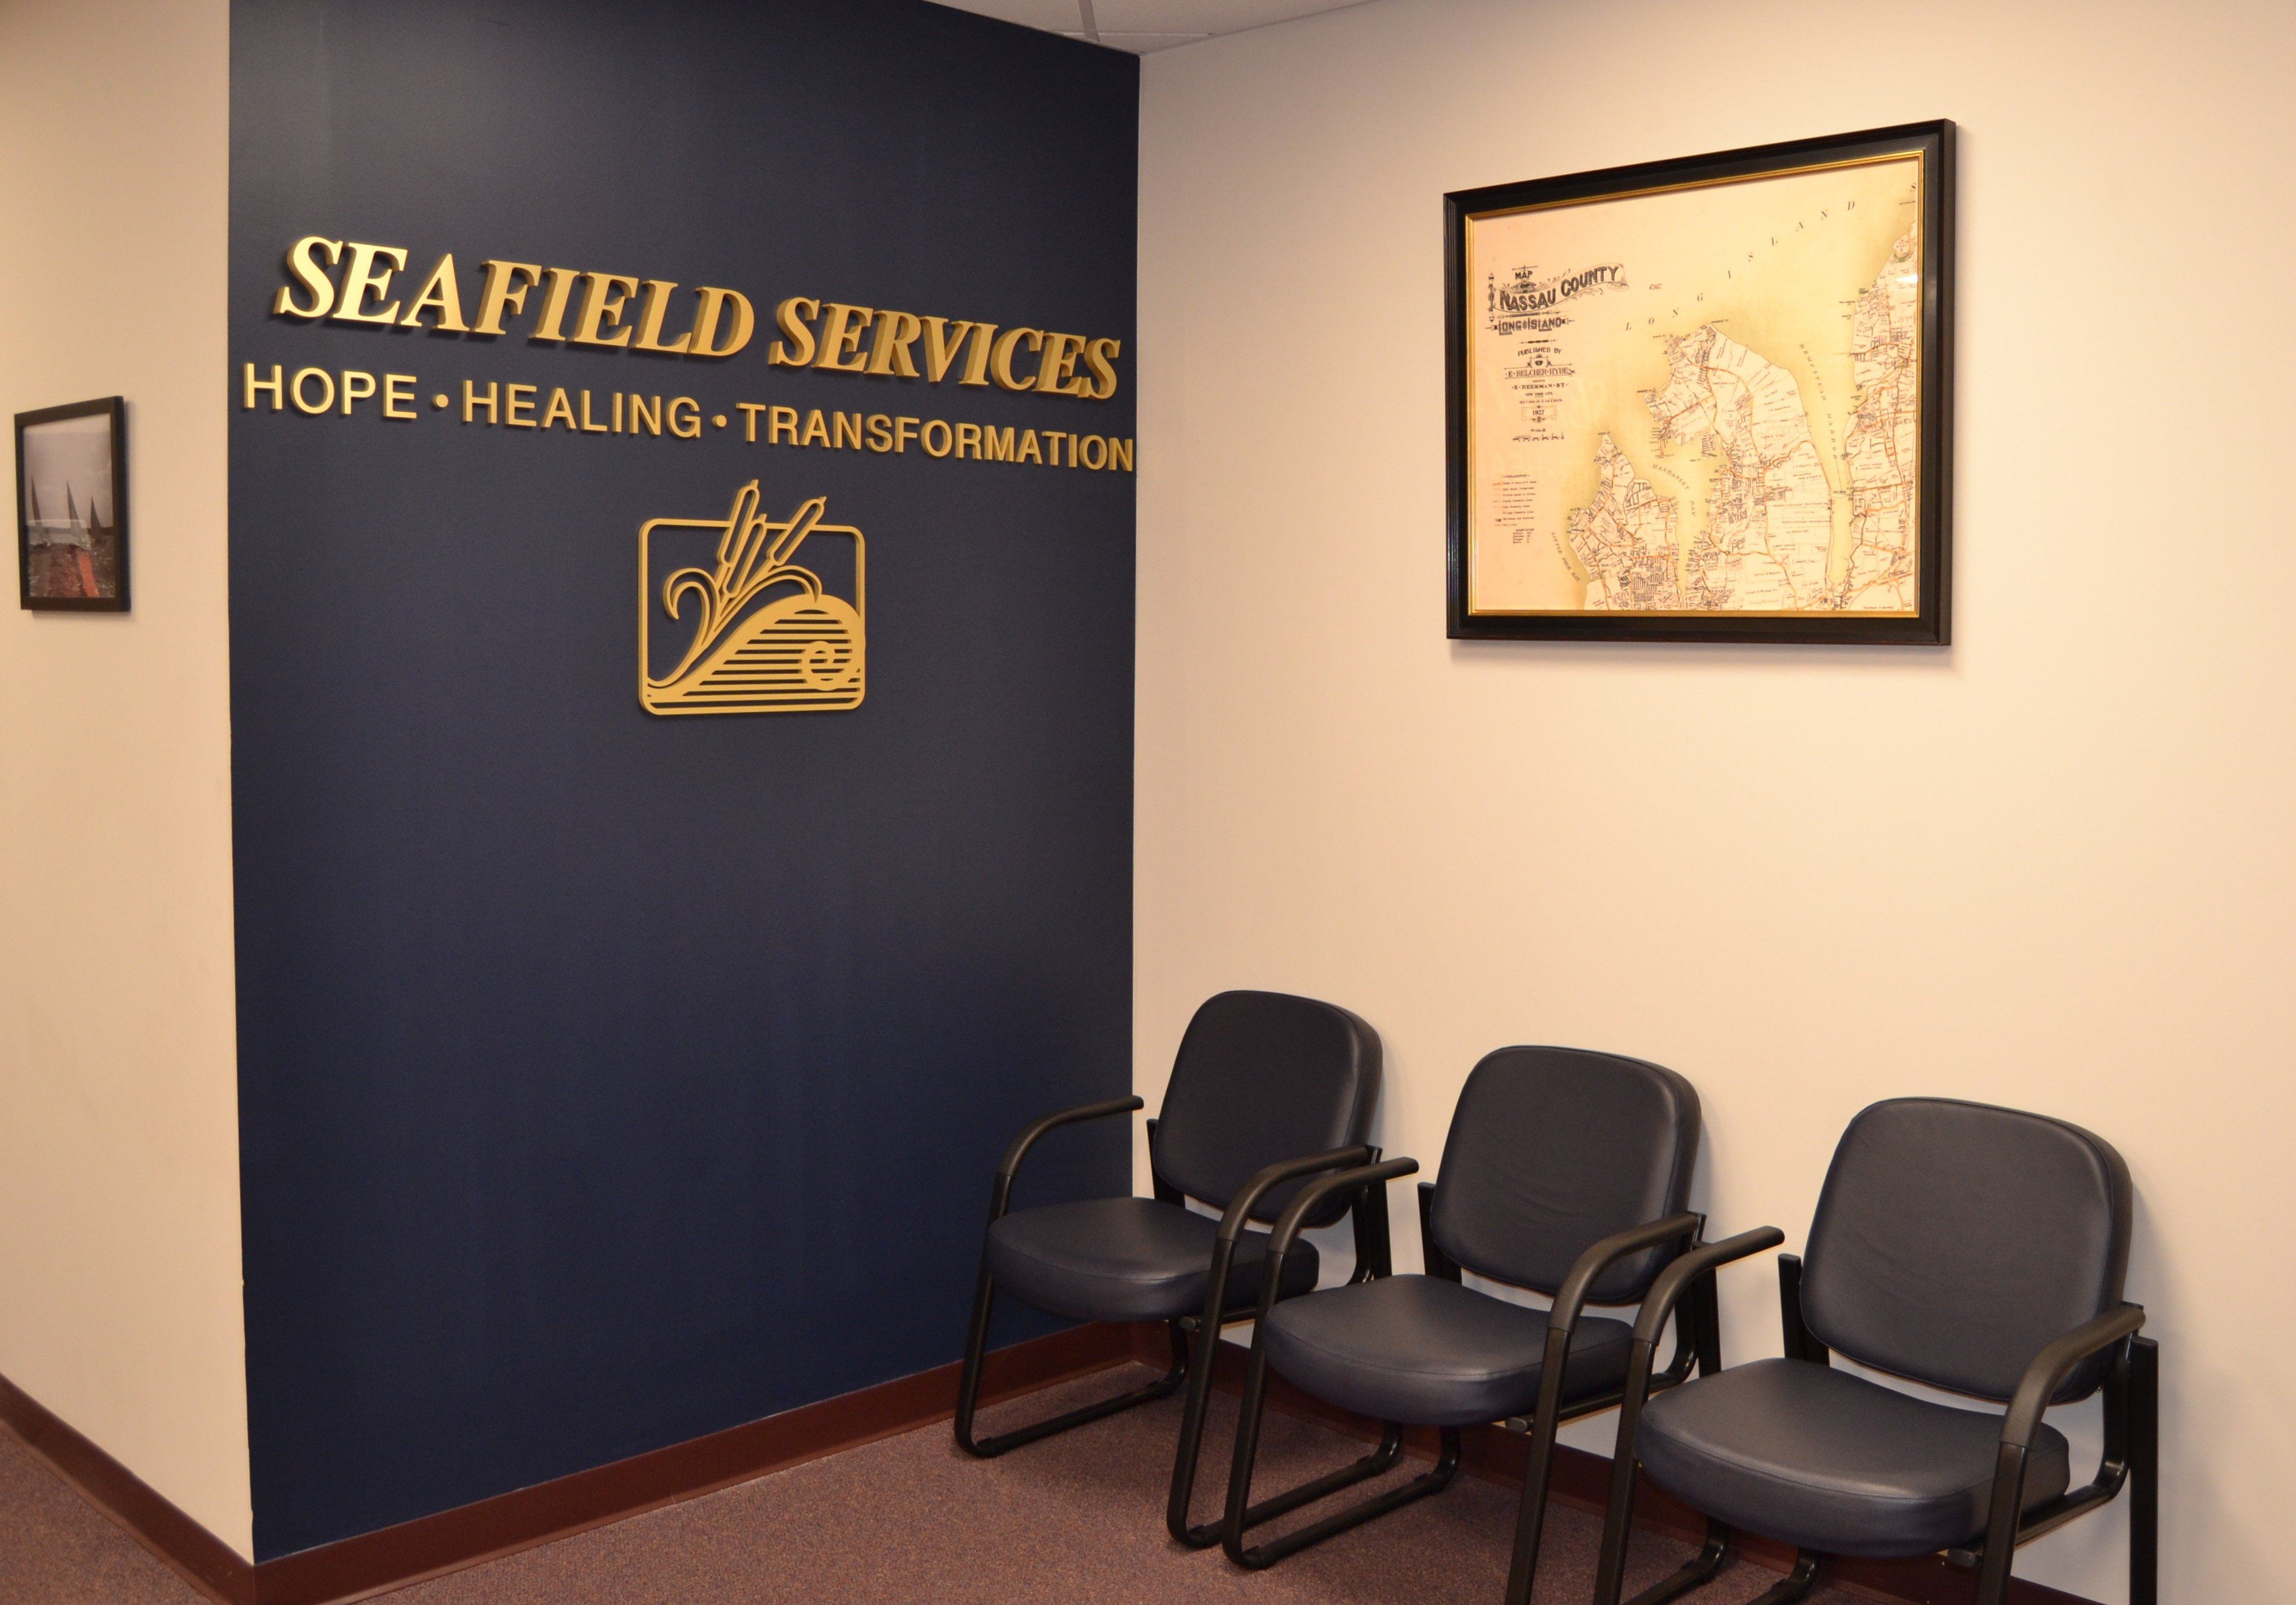 waiting room of Seafield drug & alcohol rehab facility - Manhasset NY